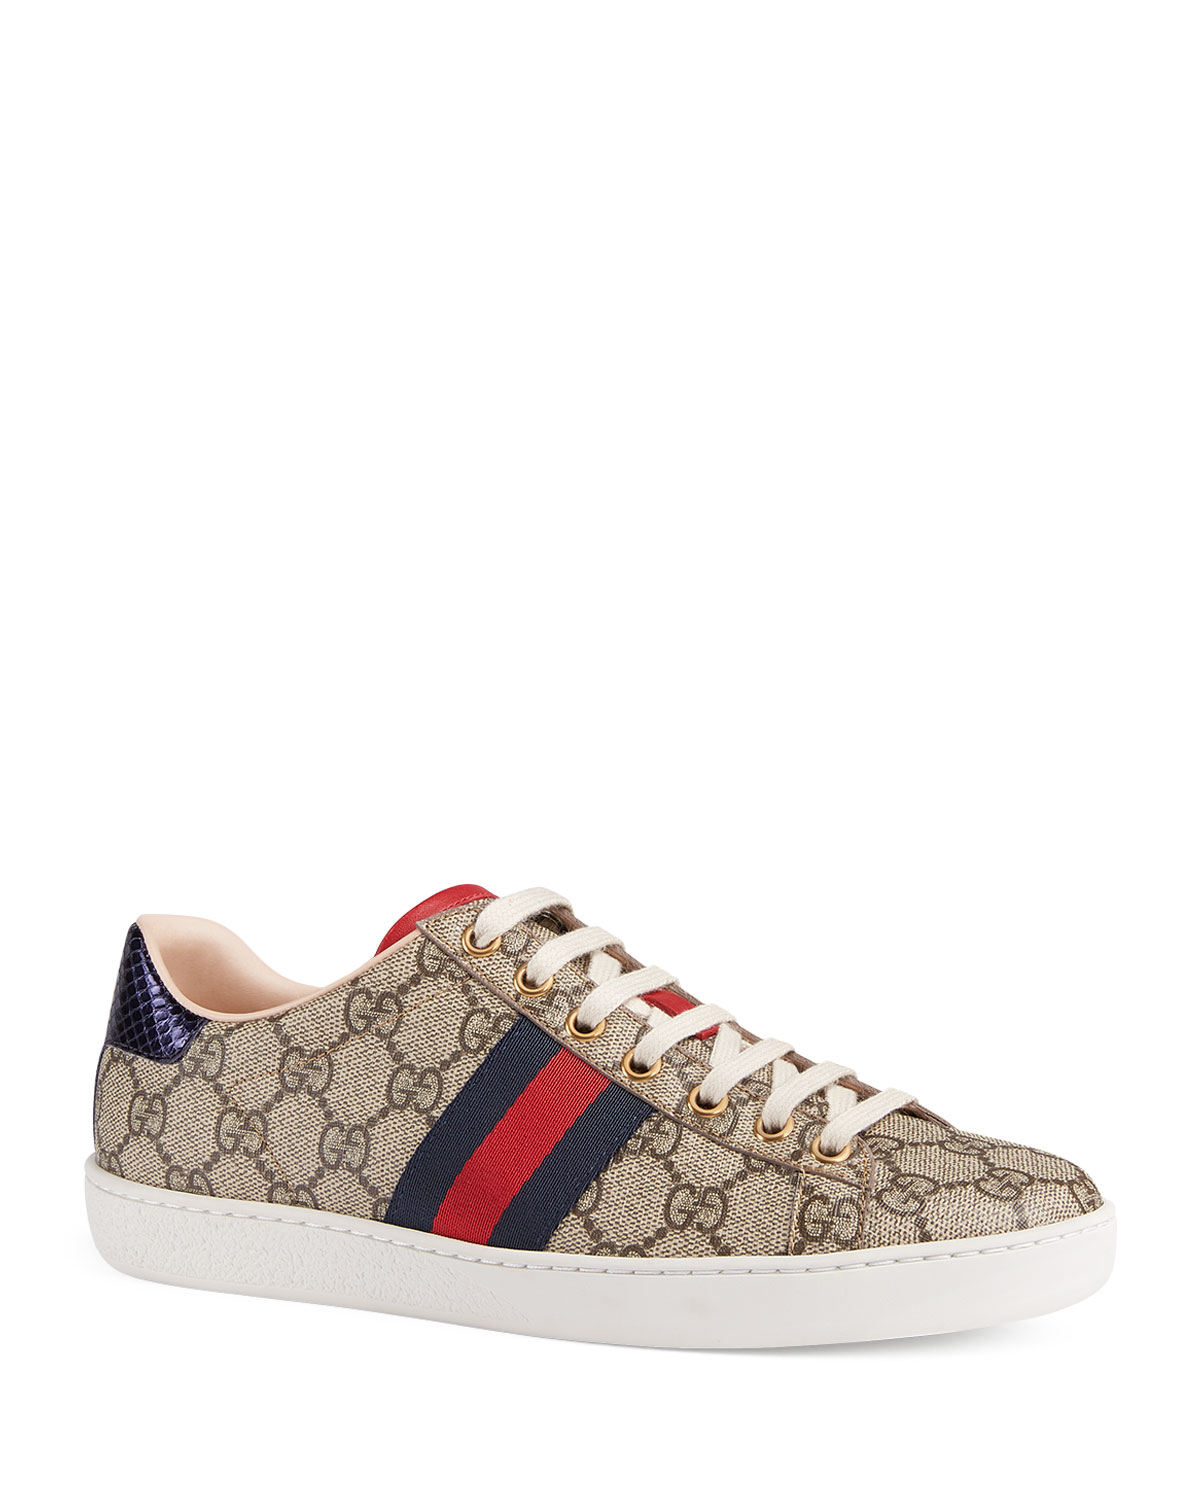 Gucci New Ace GG Supreme Trainer